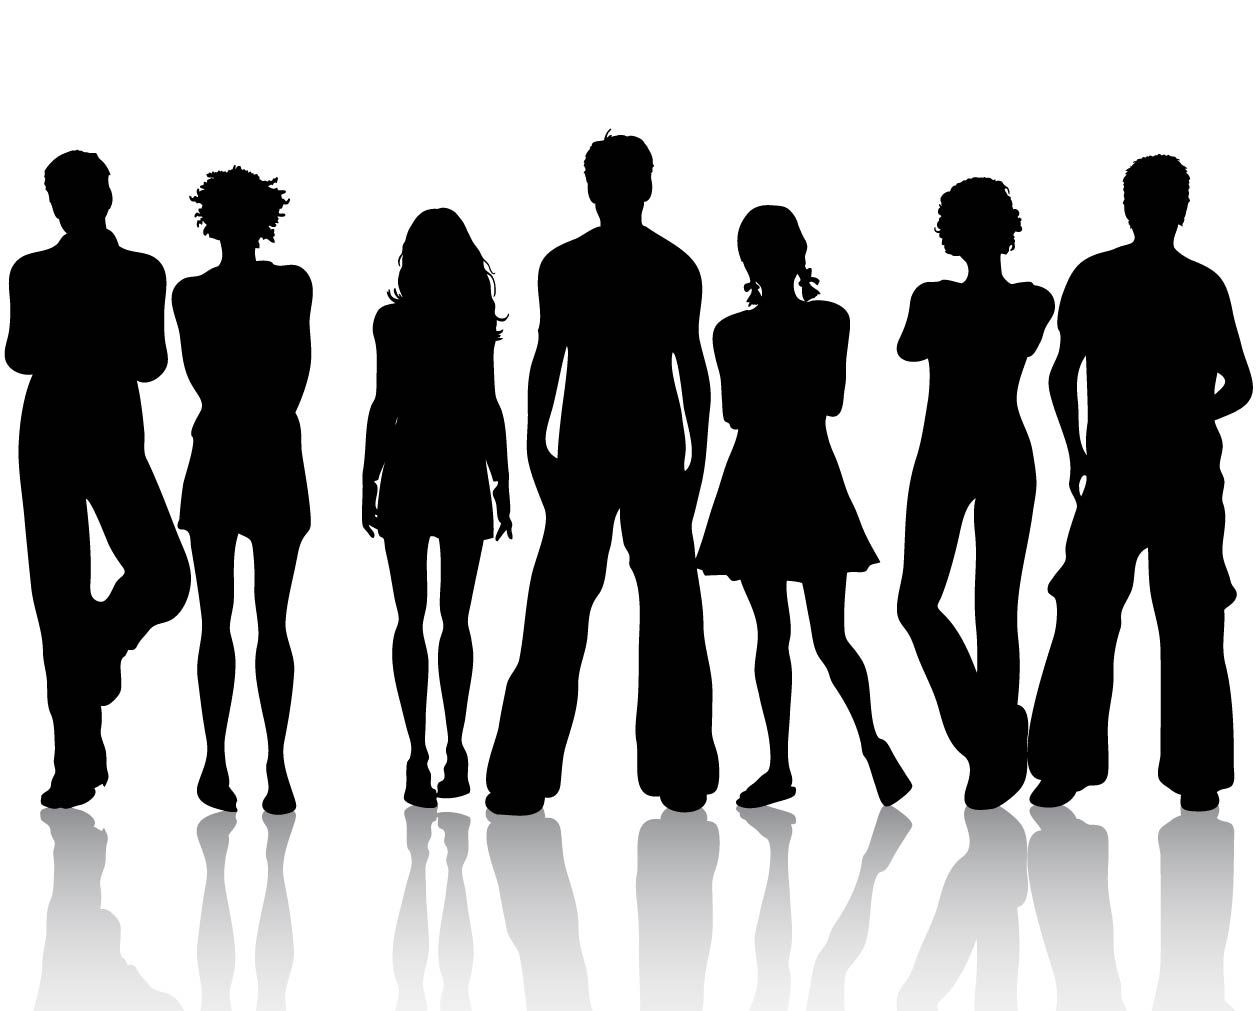 Zombie Silhouette Stock Photos  Royalty Free Stock Images